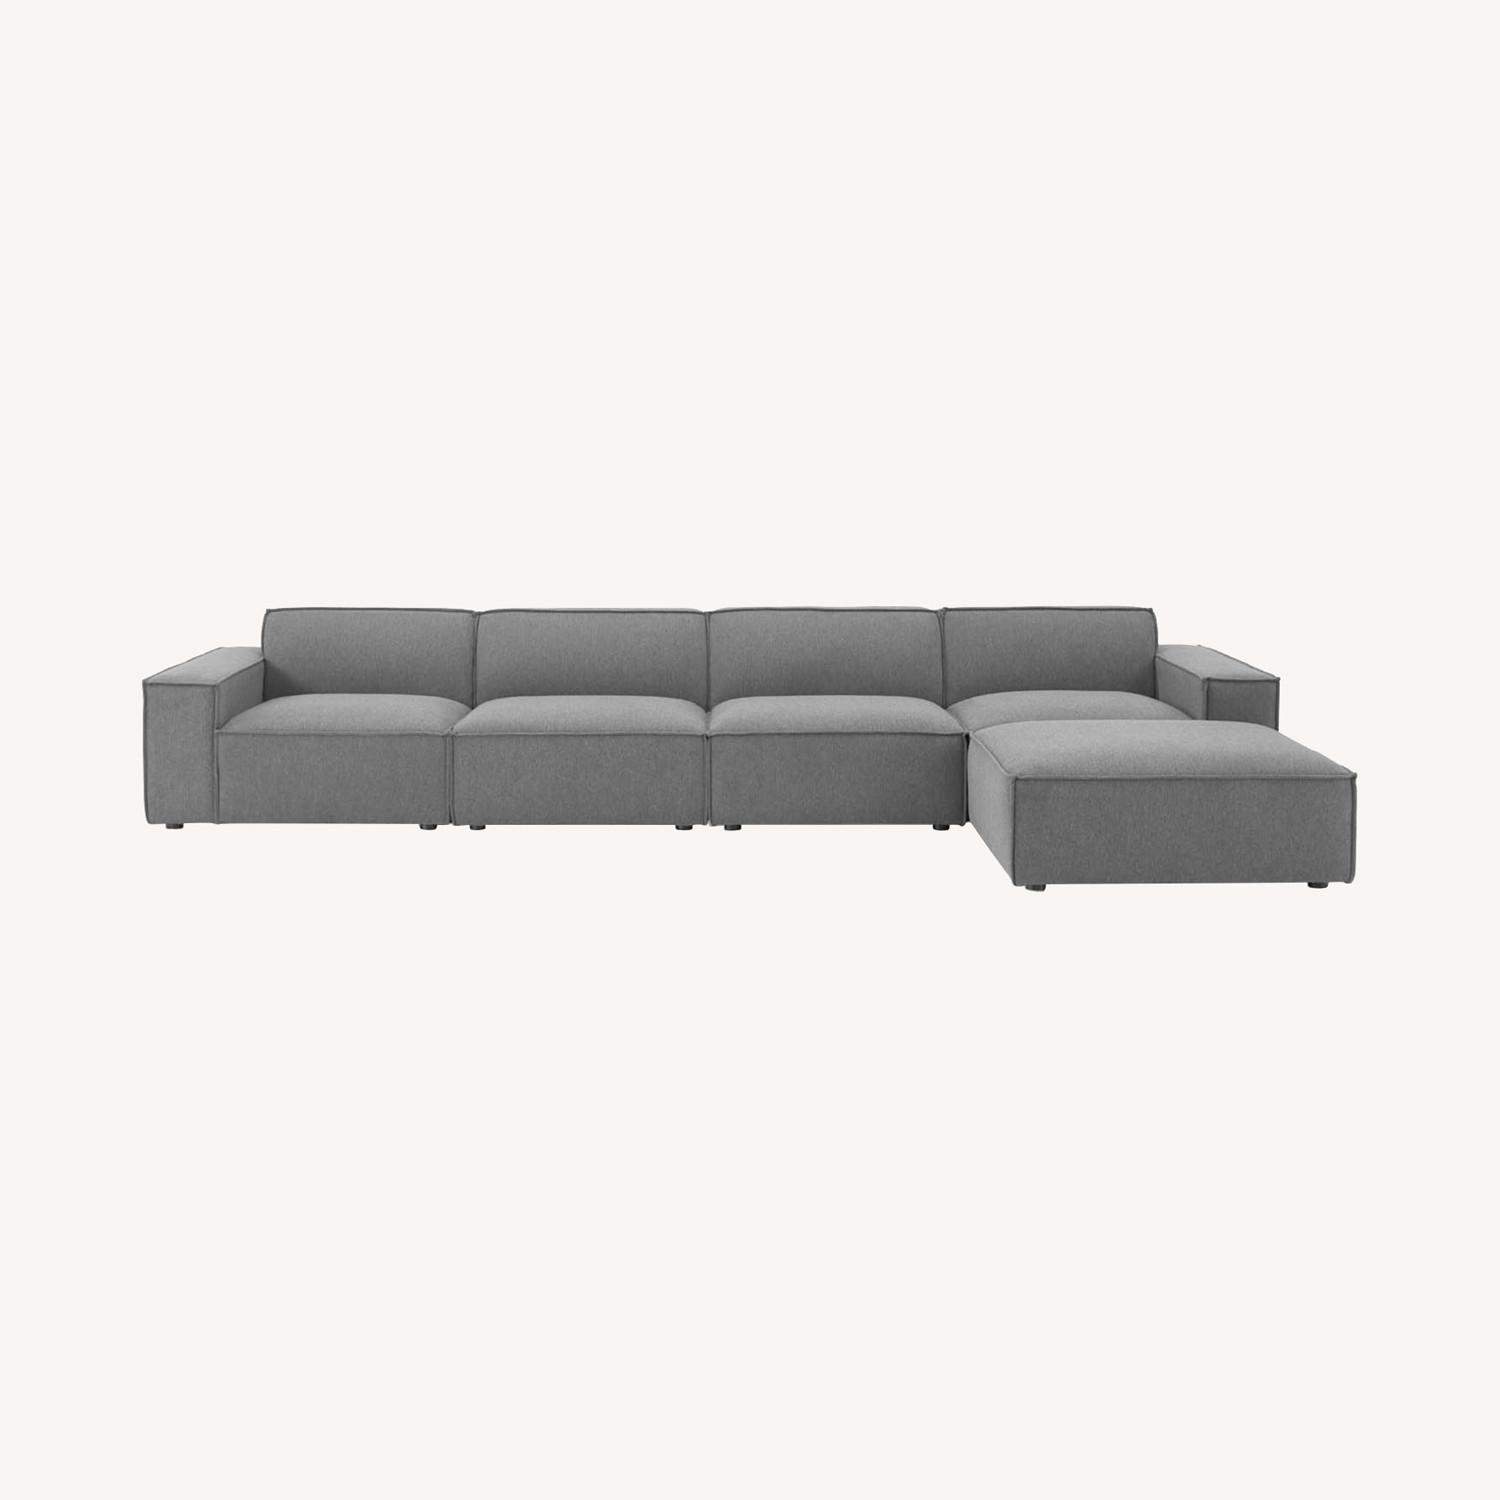 5-Piece Sectional Sofa In Charcoal Fabric - image-11